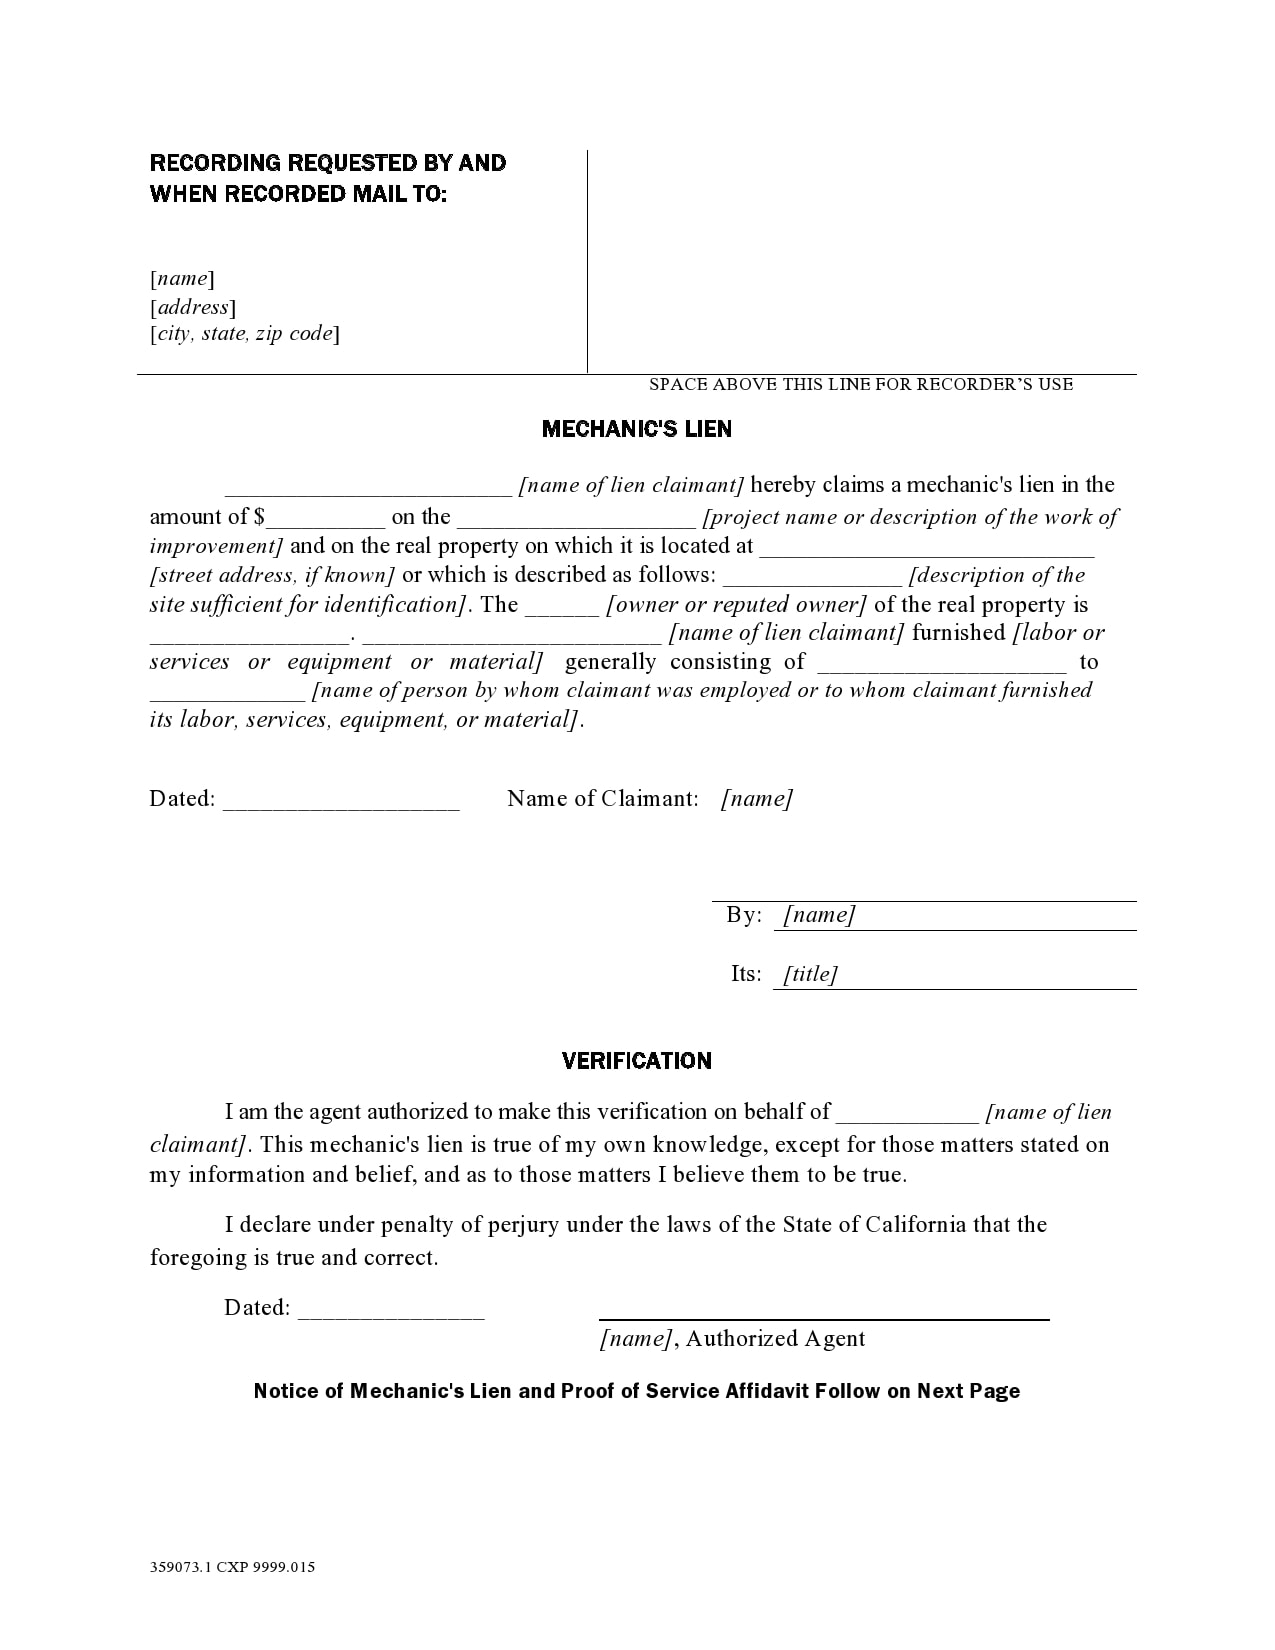 mechanics lien form 10